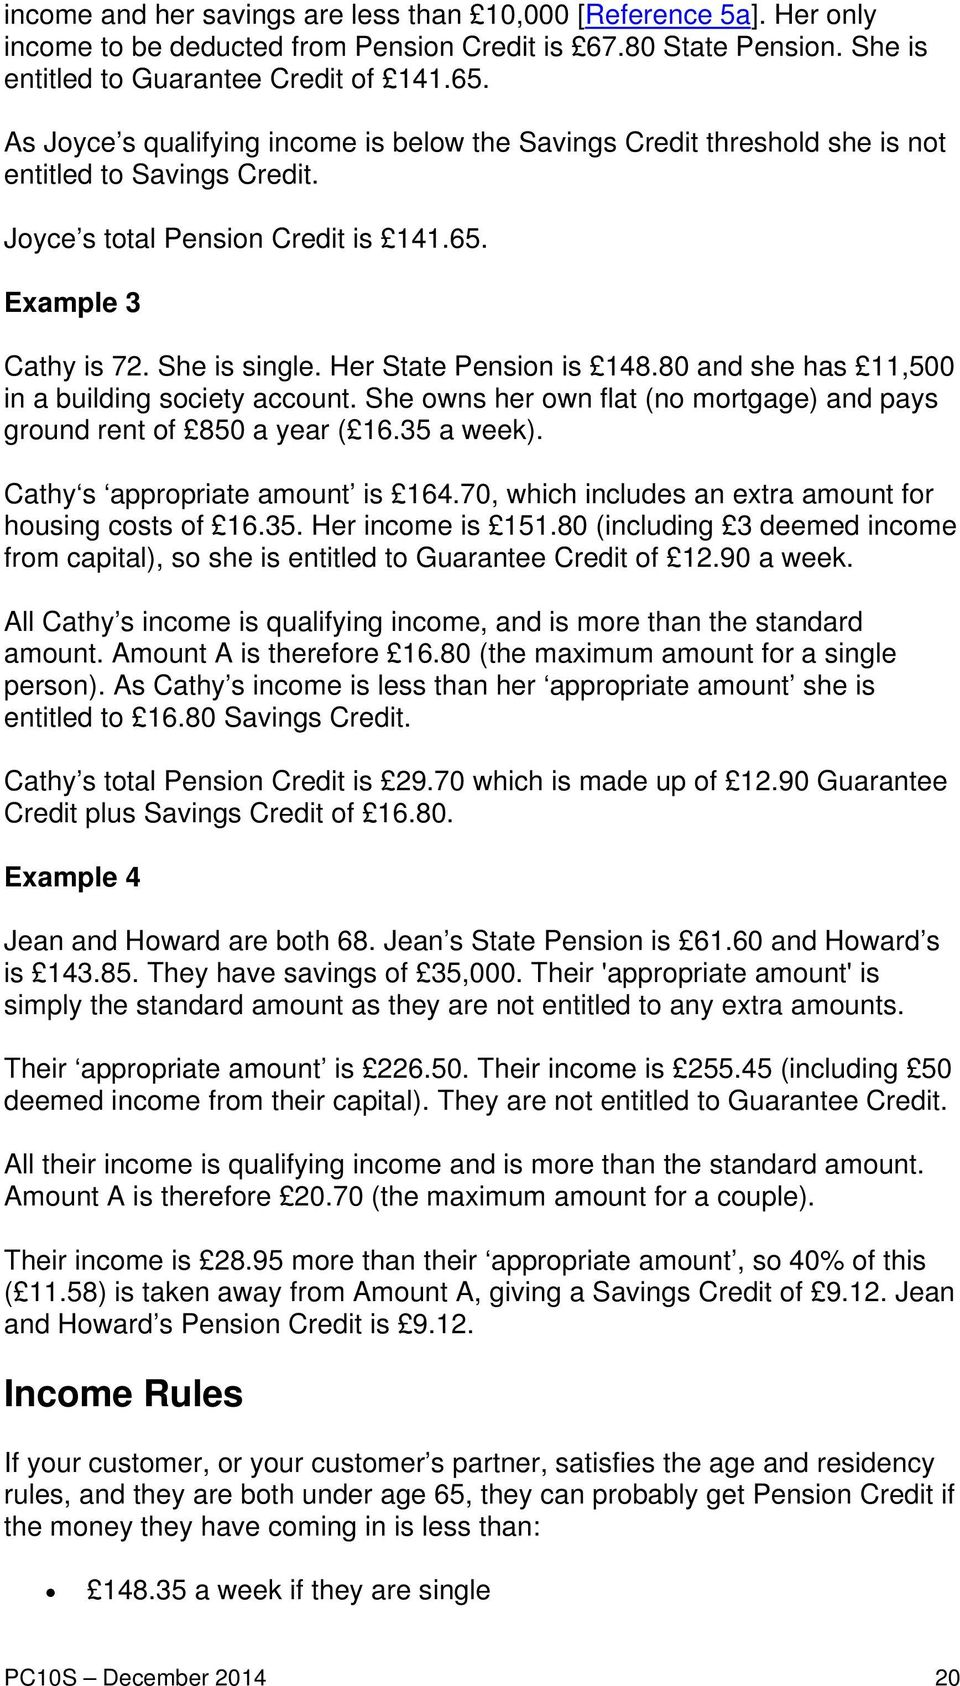 Her State Pension is 148.80 and she has 11,500 in a building society account. She owns her own flat (no mortgage) and pays ground rent of 850 a year ( 16.35 a week). Cathy s appropriate amount is 164.